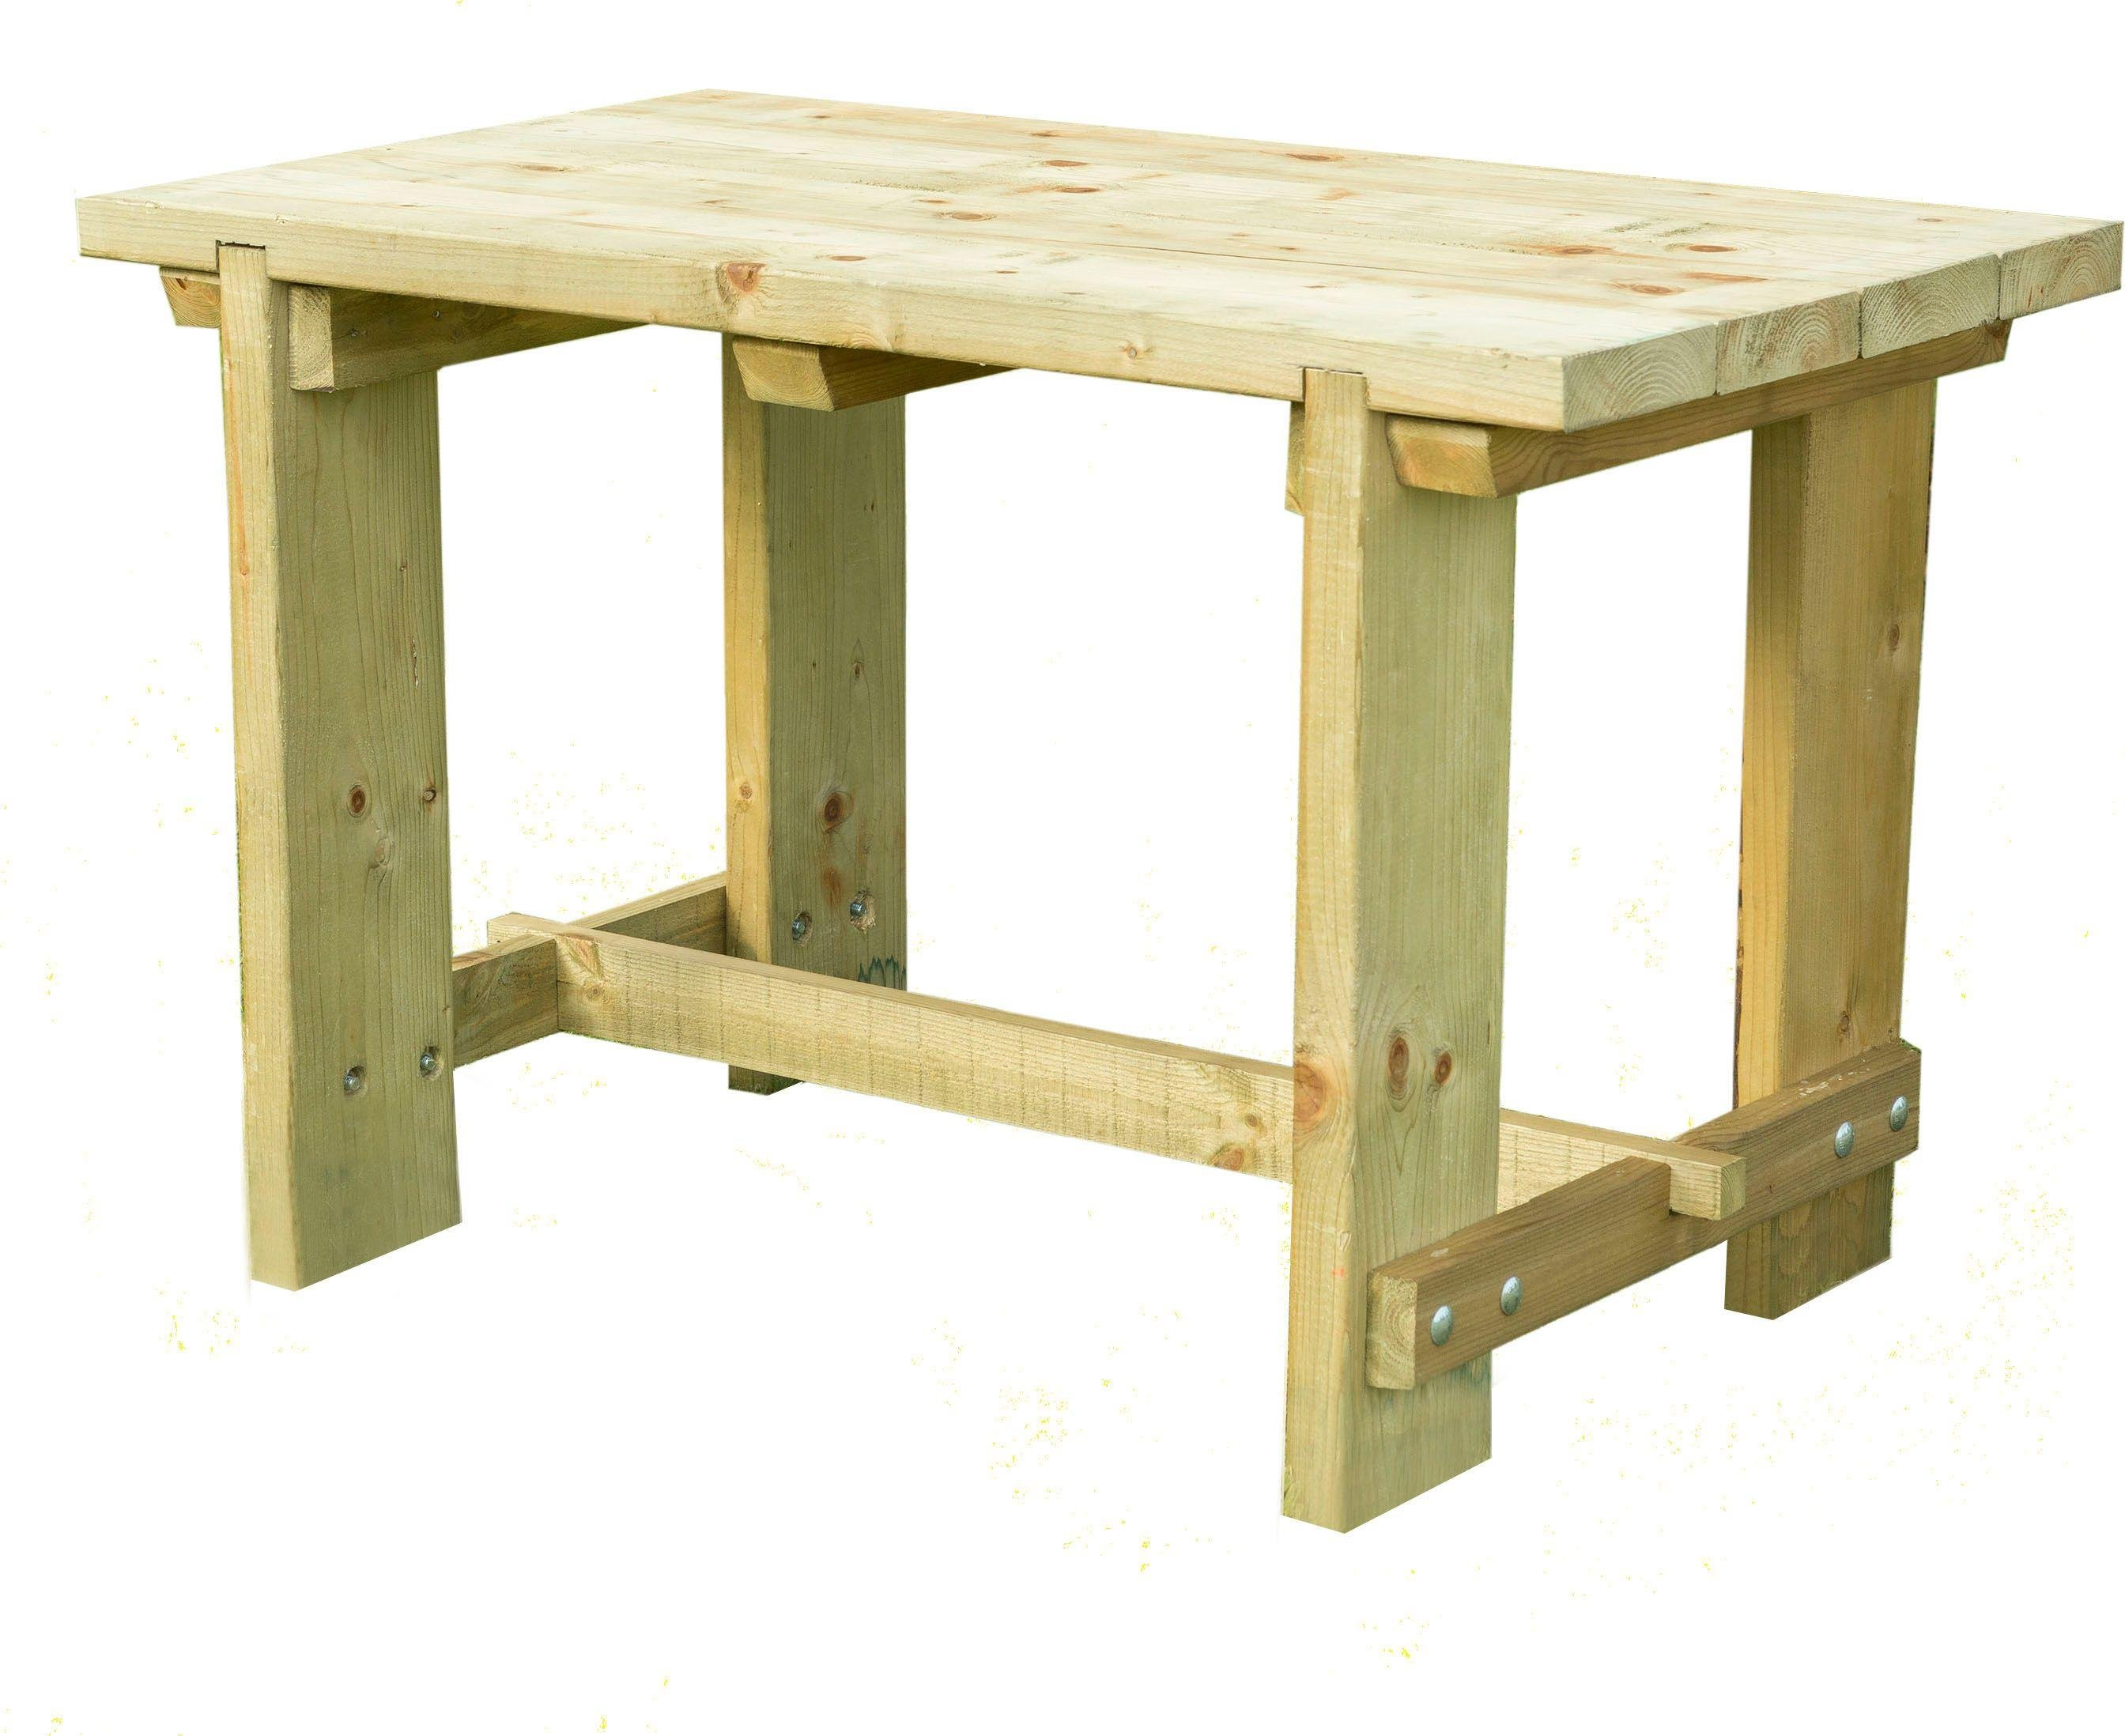 Forest Refectory Table 1.2m. lowest price